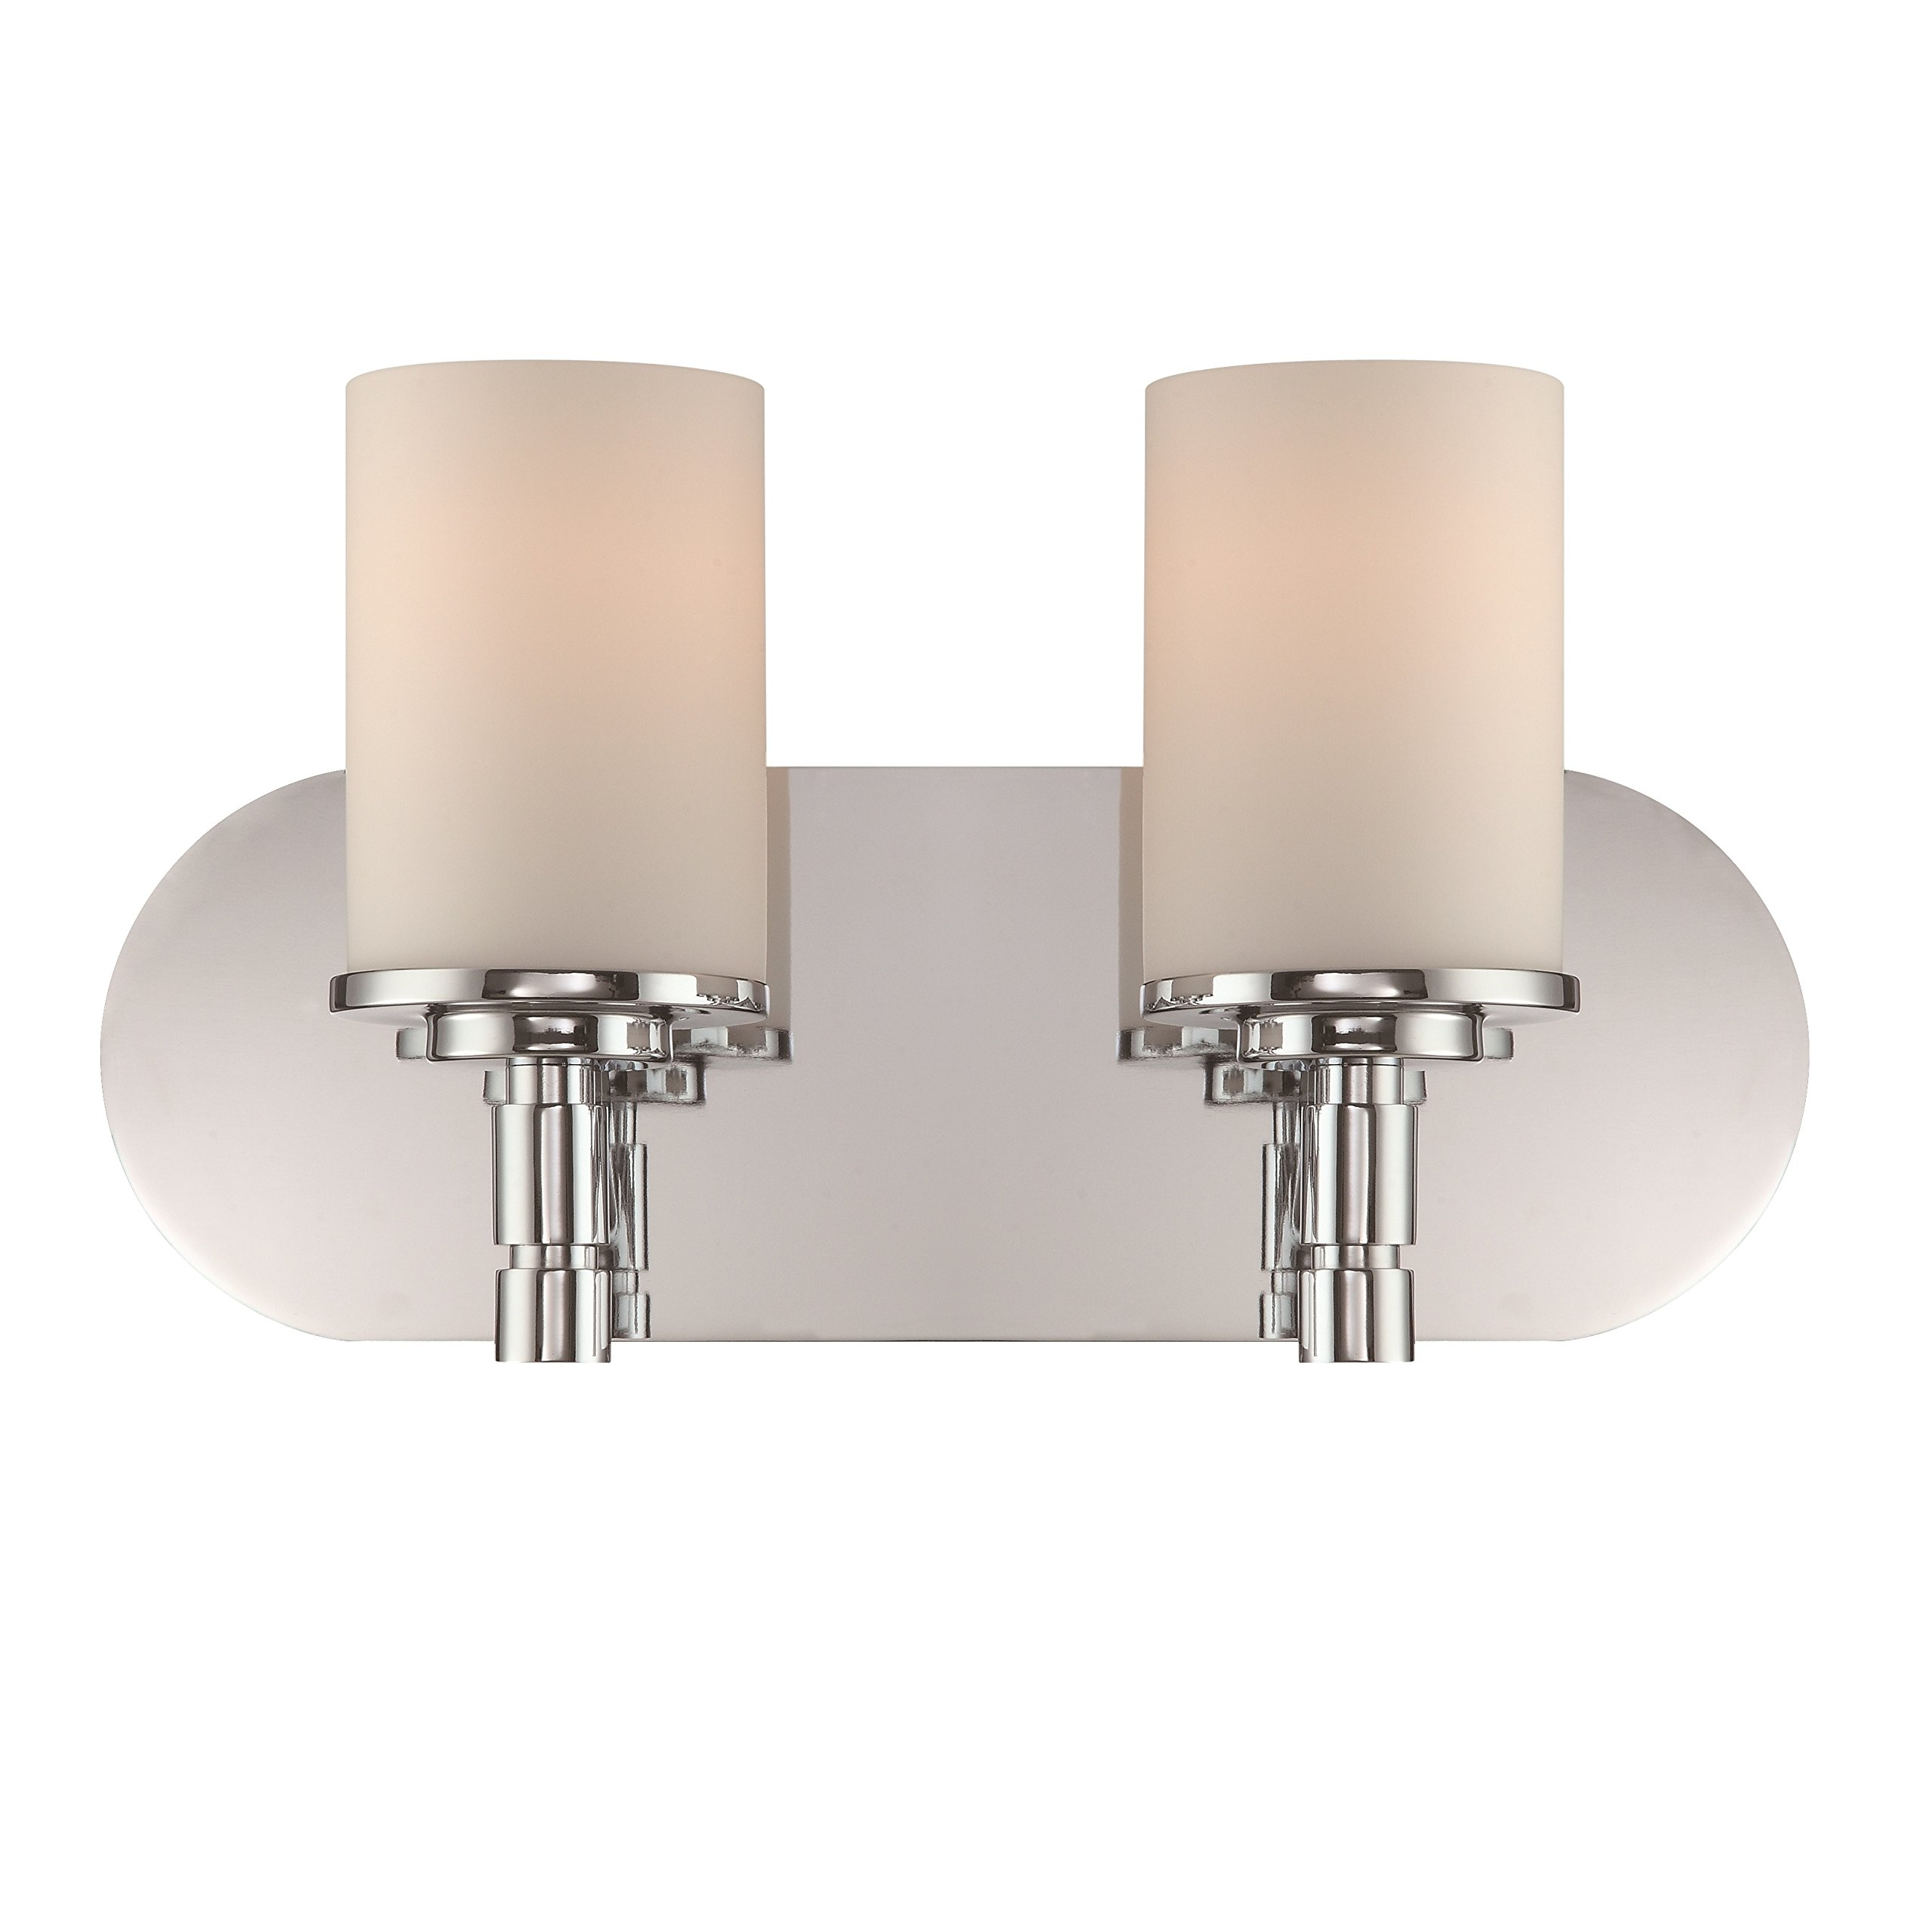 Lite Source LS-16312 E27 Type A 60W x 2 Lina 2-Lite Vanity with Chrome/Frost Glass Shade